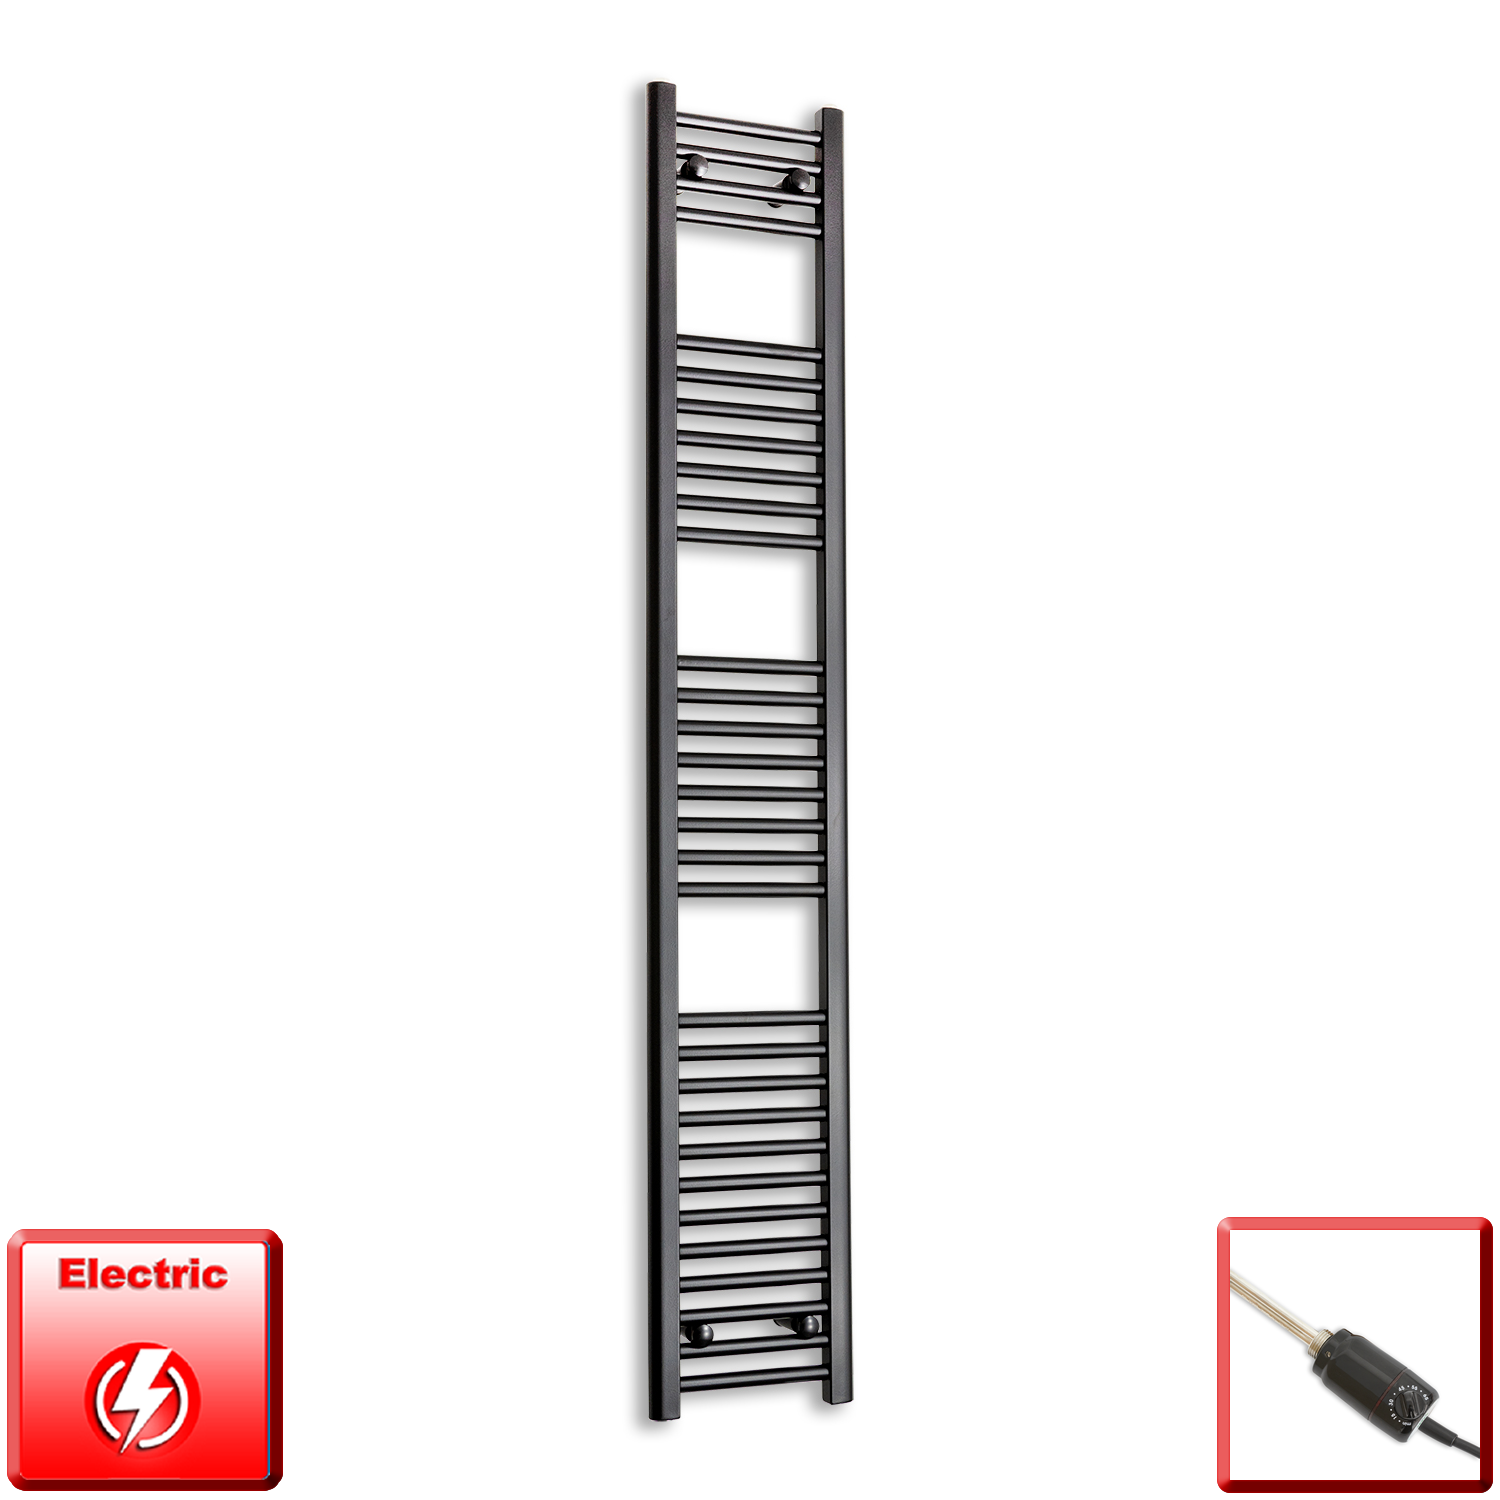 300mm Wide 1800mm High Flat Black Pre-Filled Electric Heated Towel Rail Radiator HTR,GT Thermostatic